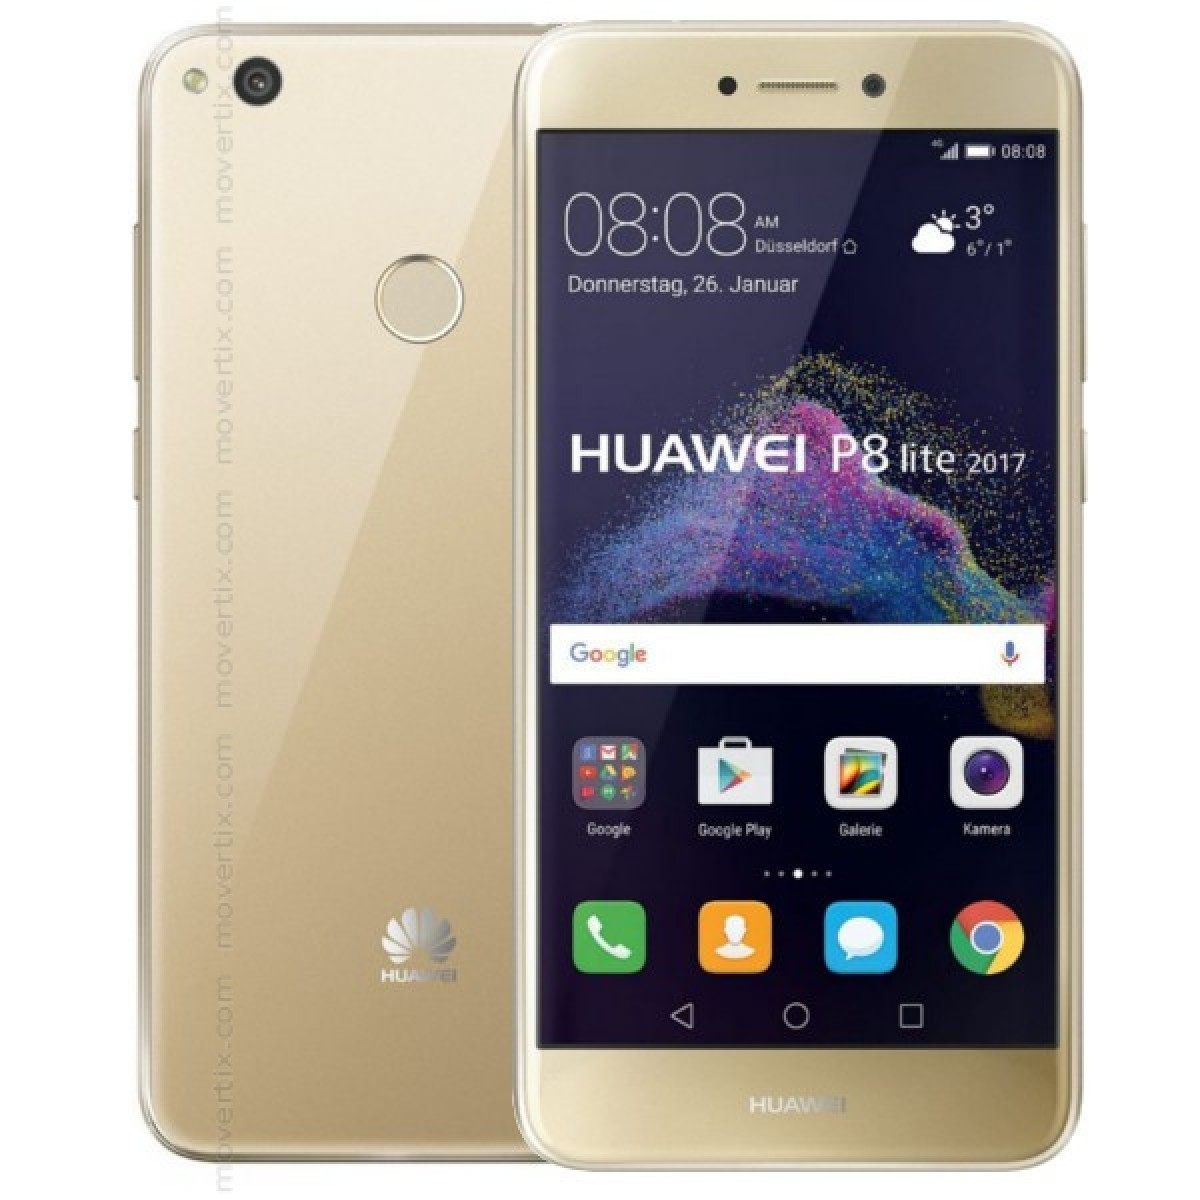 huawei p8 lite dual sim gold 2017 6901443158126 movertix mobile phones shop. Black Bedroom Furniture Sets. Home Design Ideas